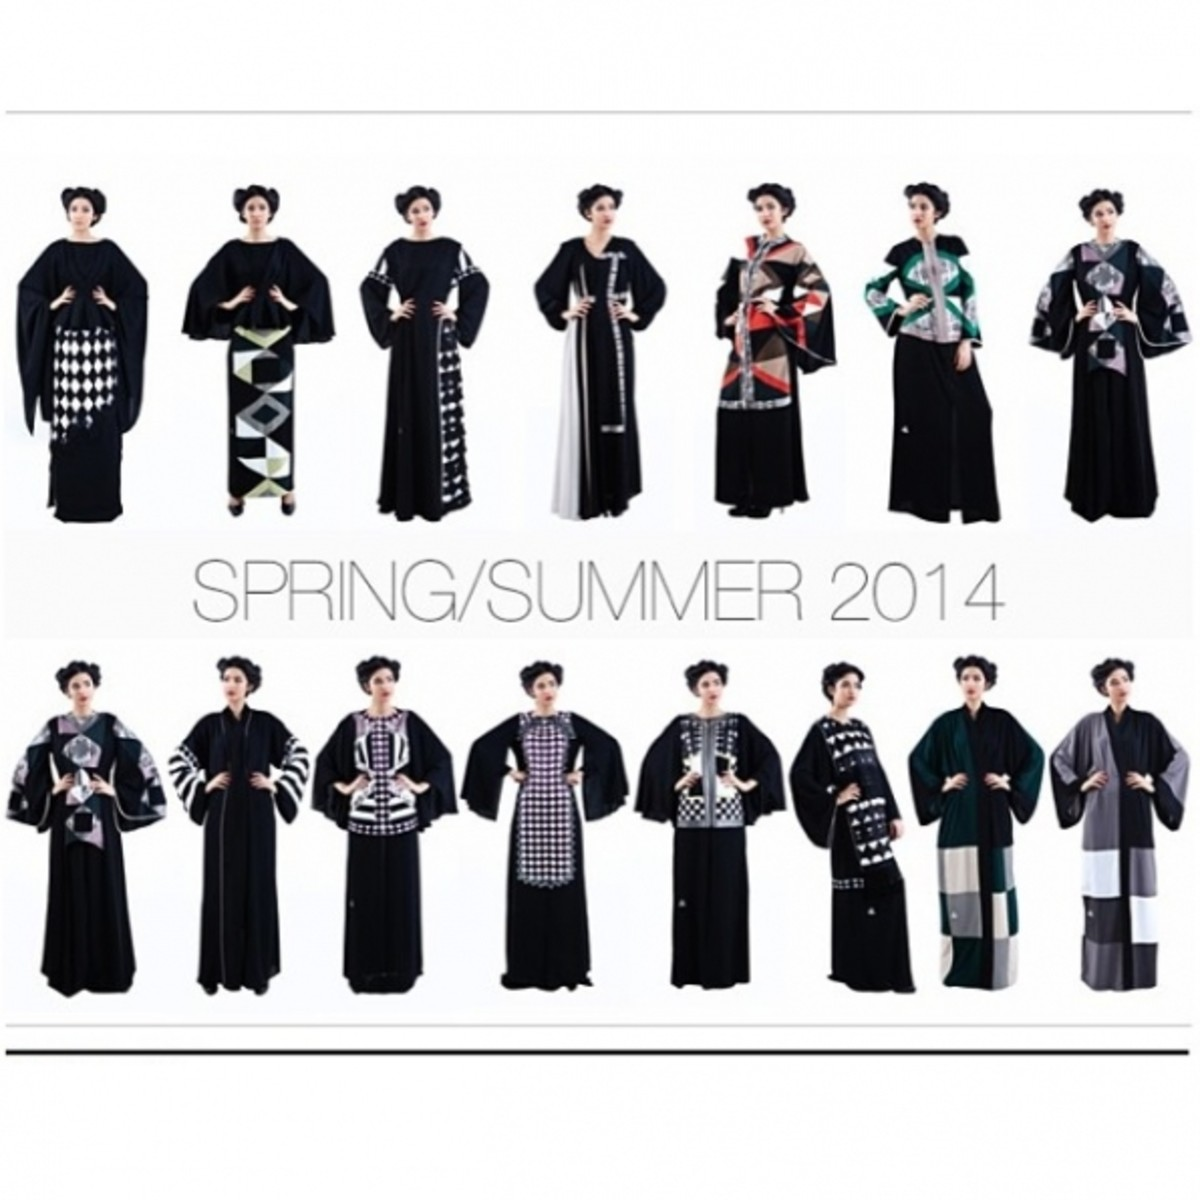 DAS Collection's Sprint / summer collection 2014. Bold prints used in burqas